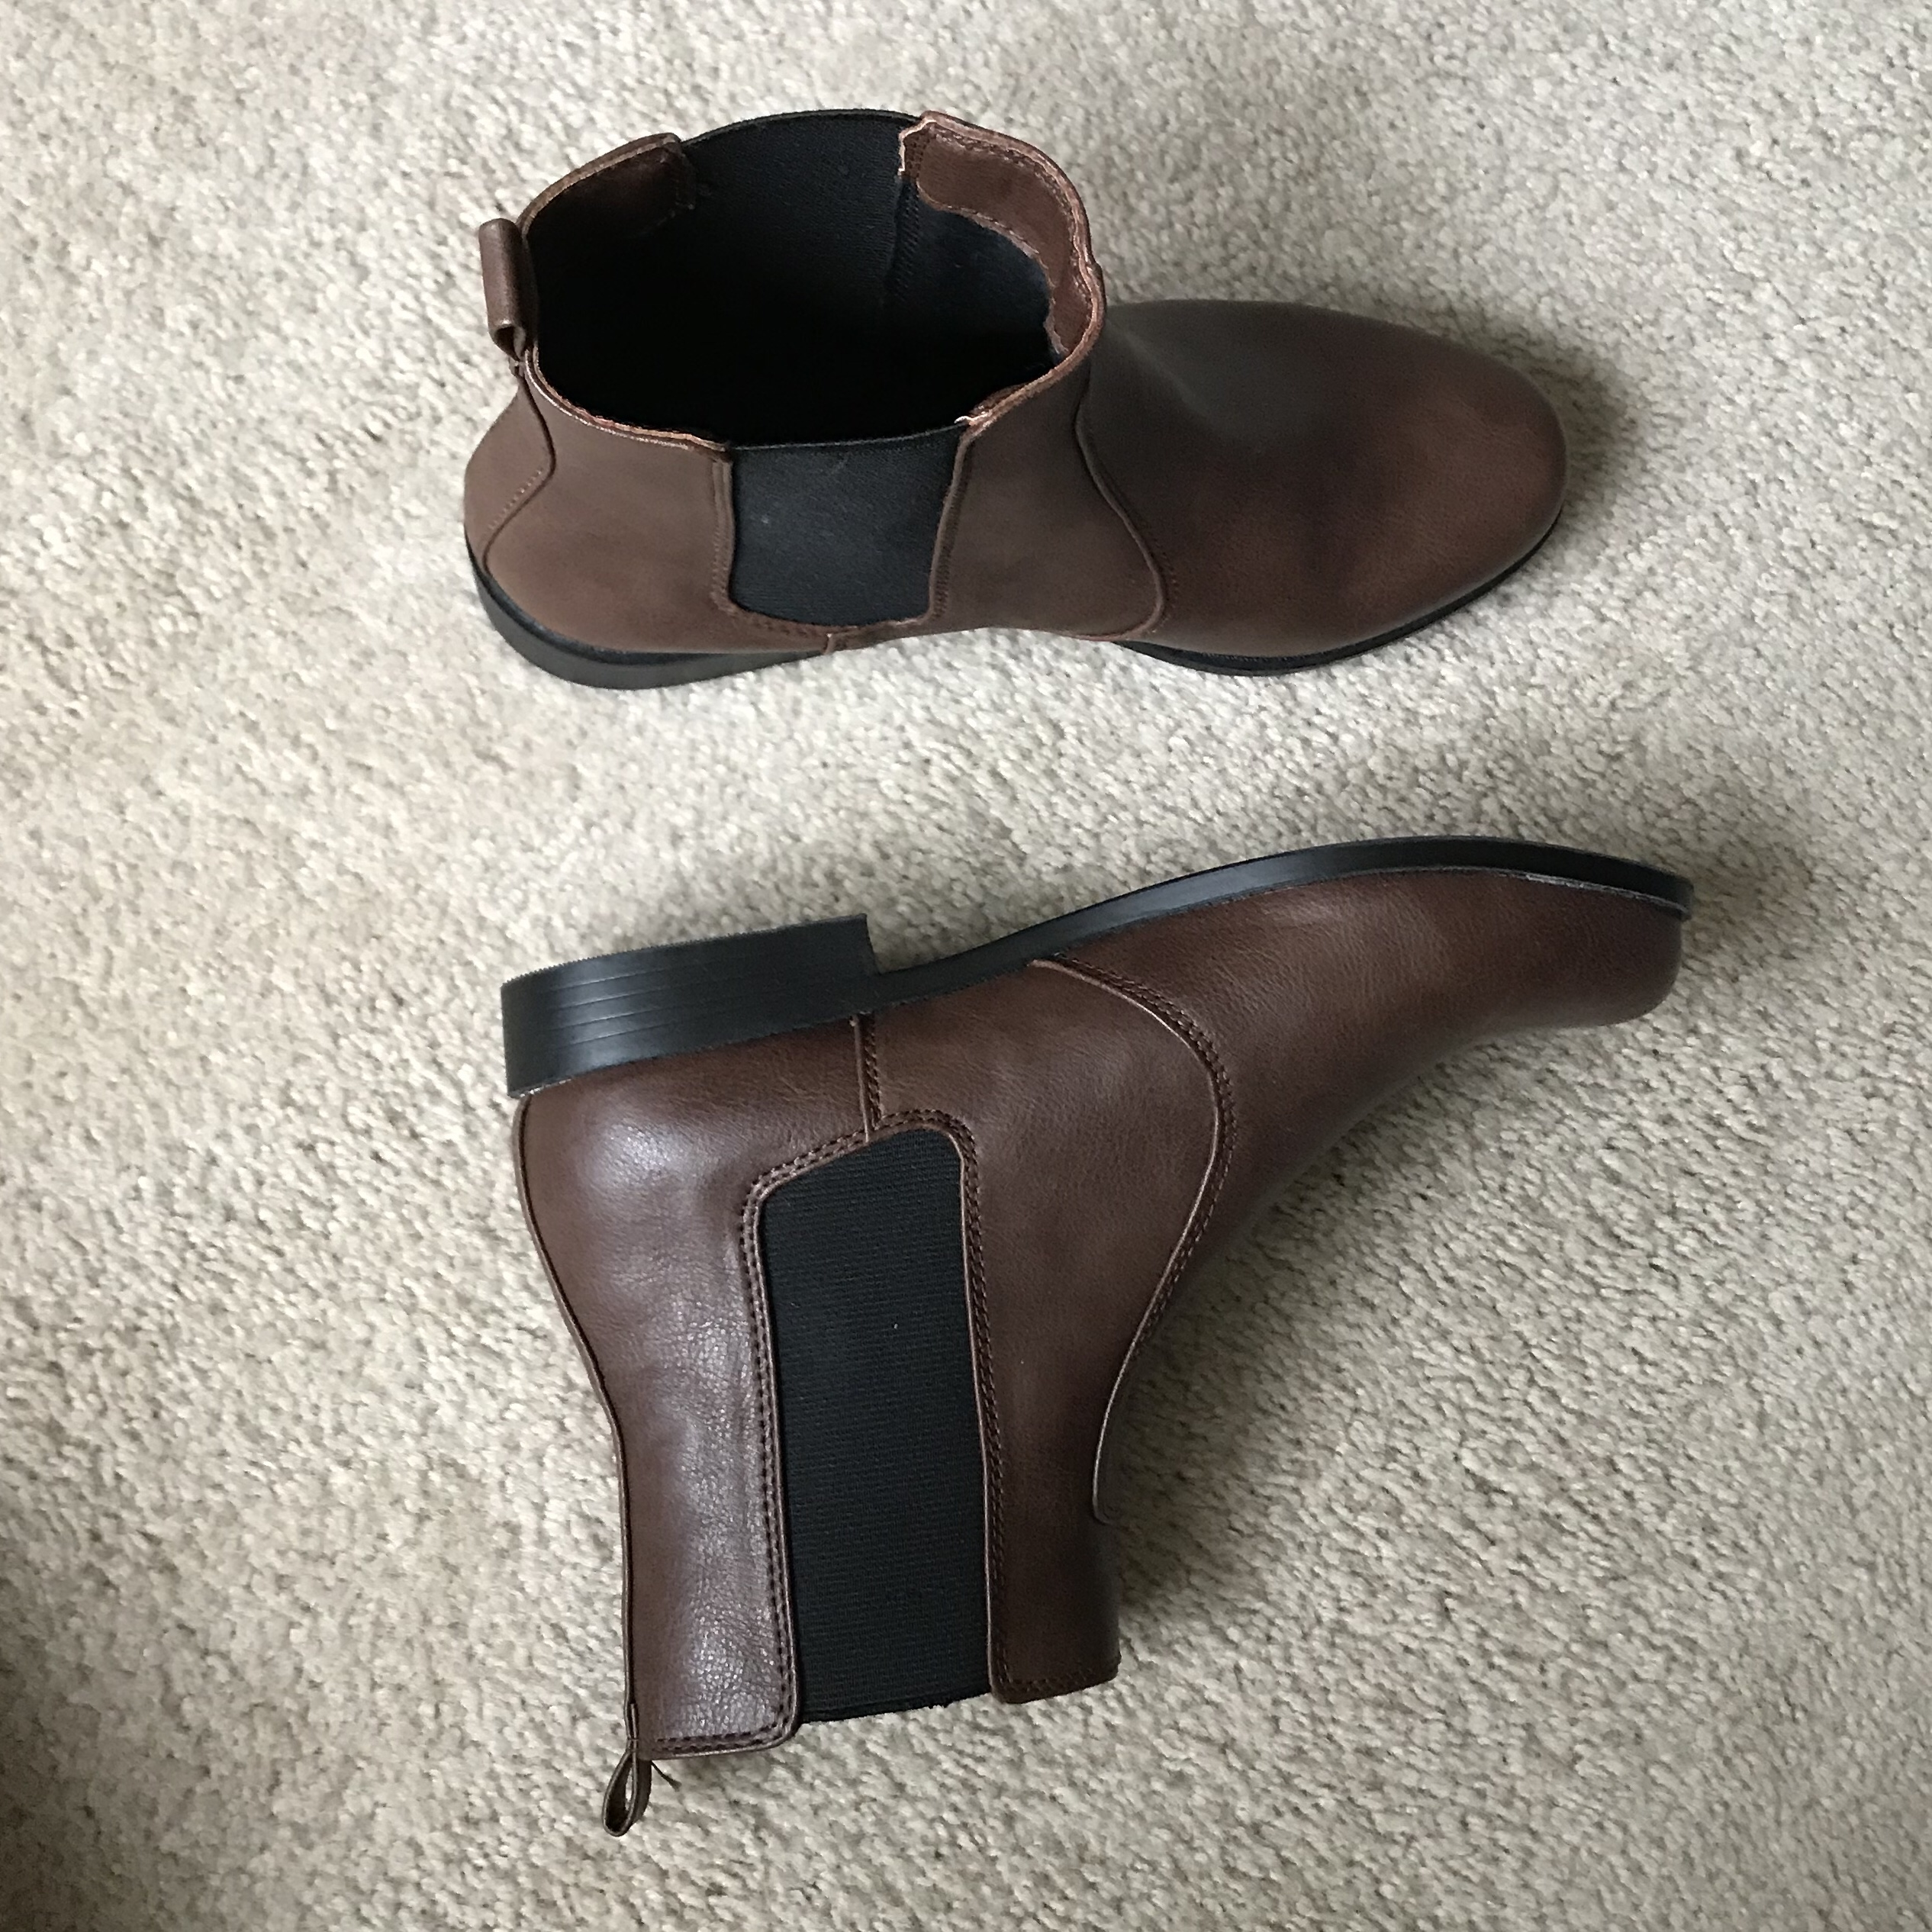 5c7d30ef06e H&M Chelsea boots - Size 8 in womens and 6 in mens... - Depop